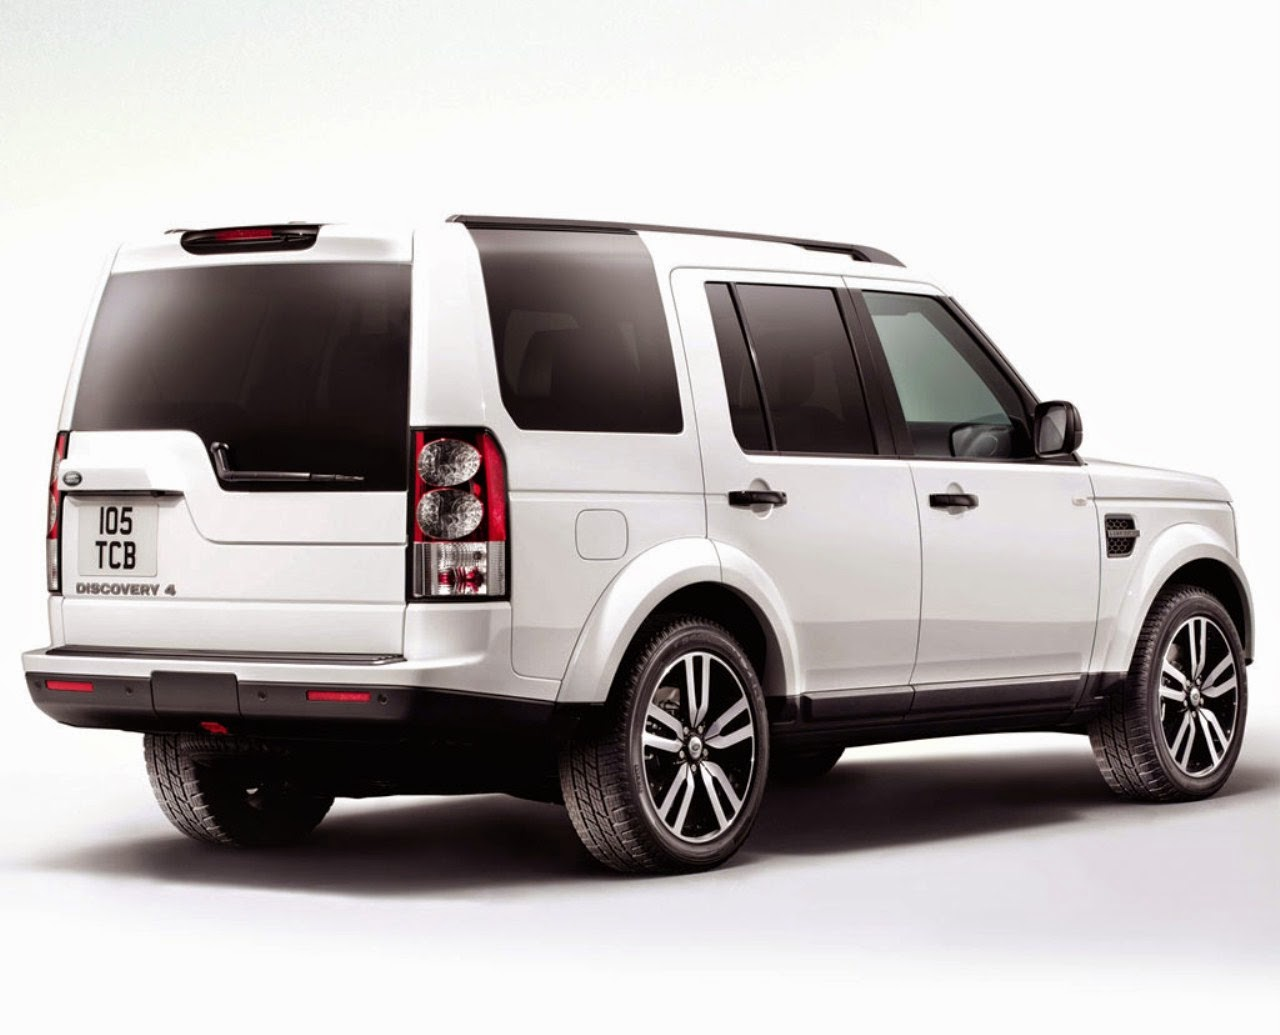 Land Rover Car Hd Wallpaper Download 2015 Land Rover Discovery 4 Car Reviews